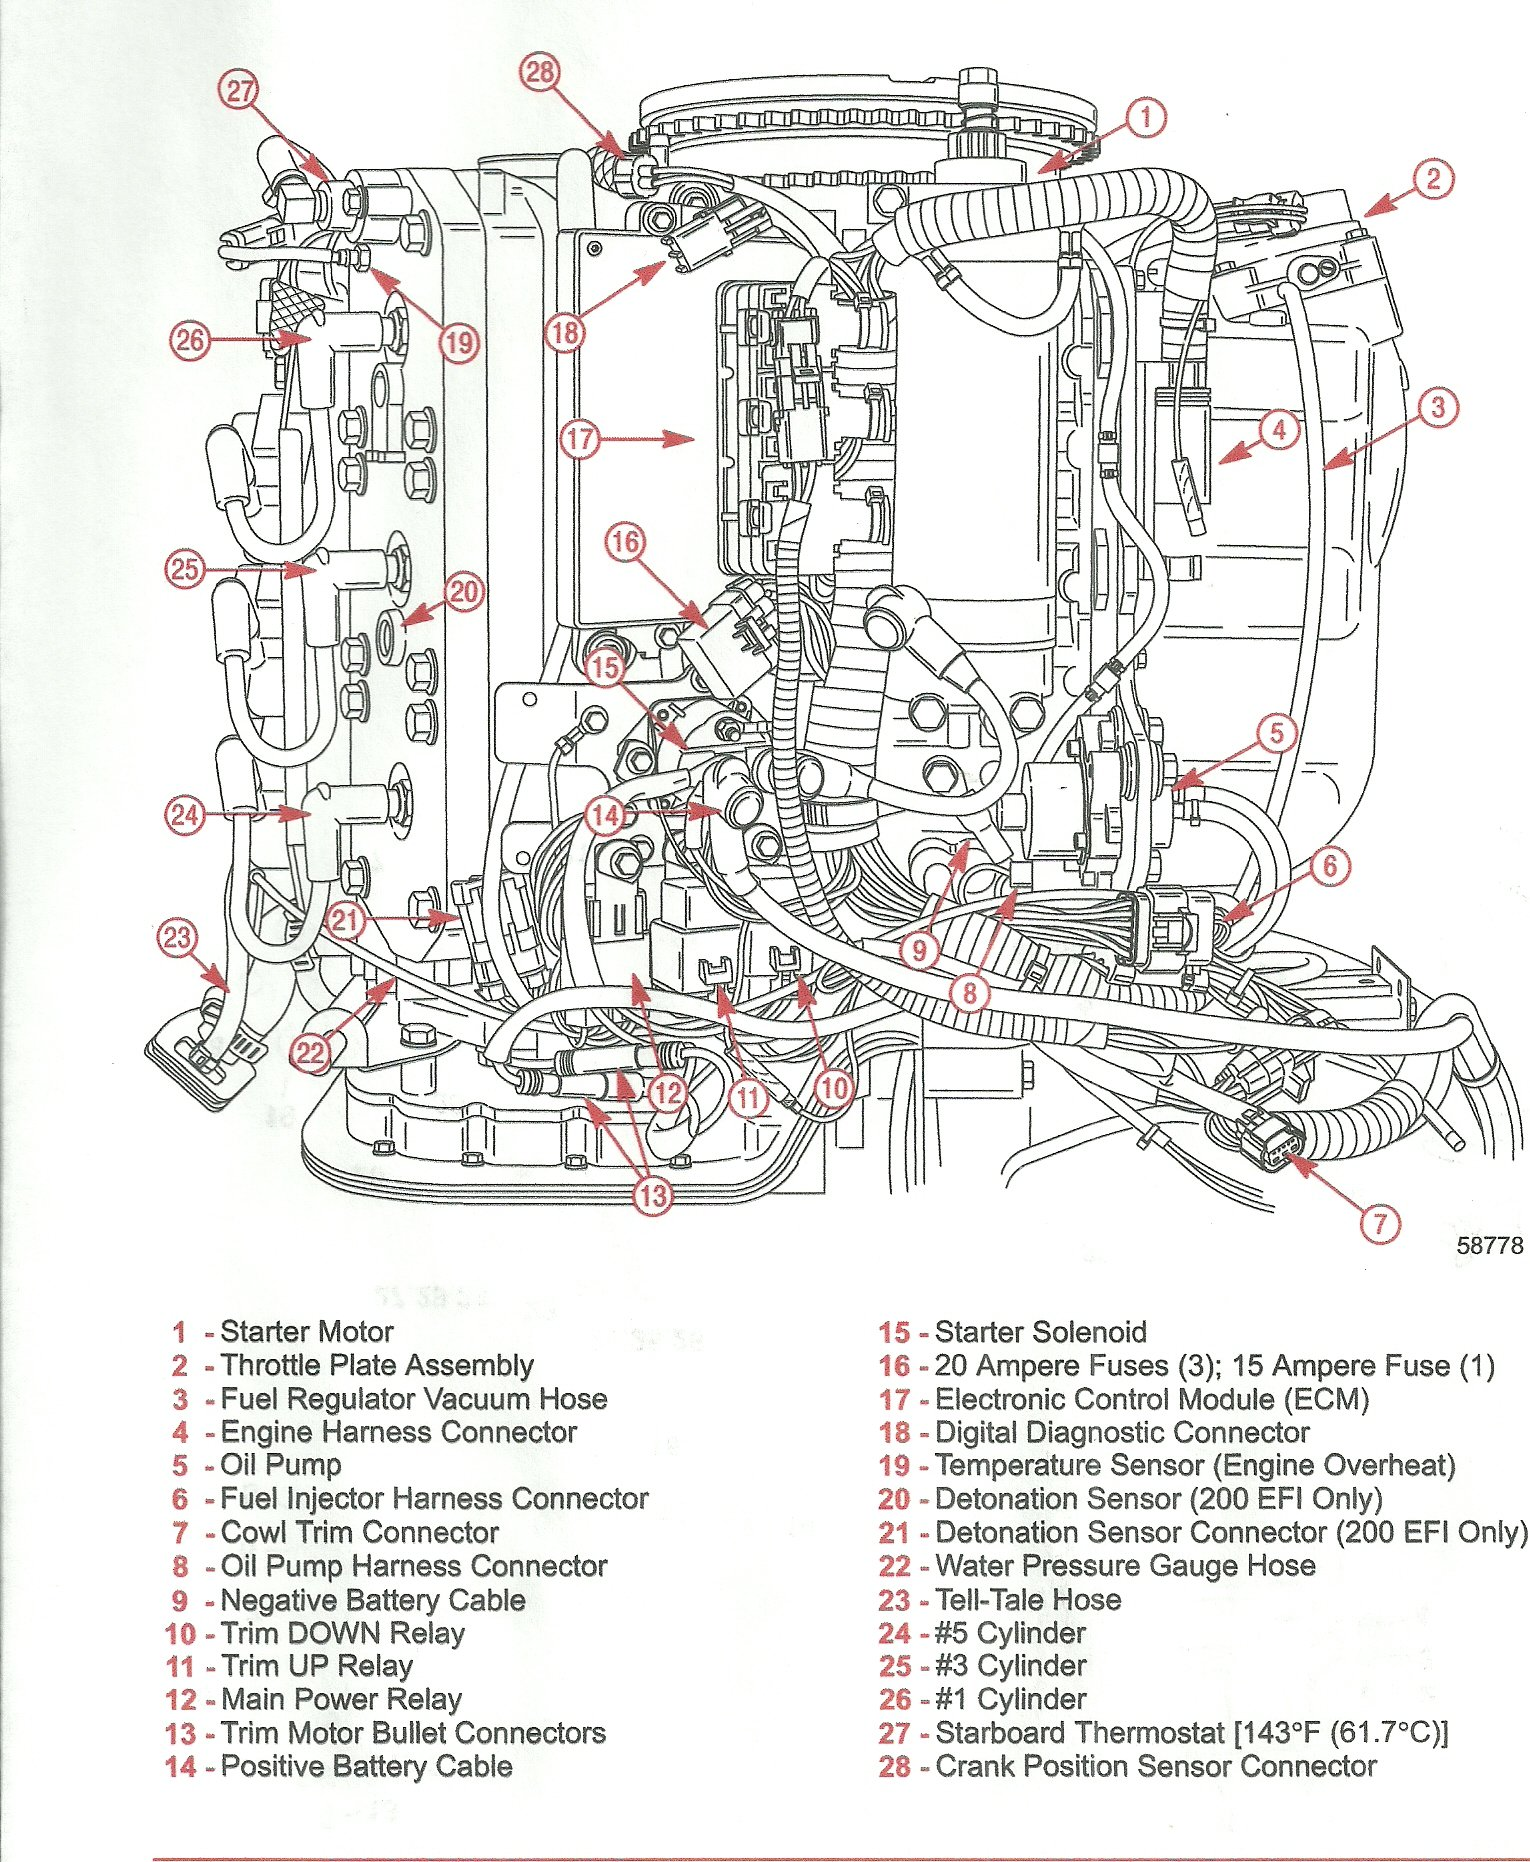 1998 mercury tracer wiring diagram free picture i have a 2007 voyager tritoon, with a mercury 150 xr6. i ... 1998 mercury 150 wiring diagram